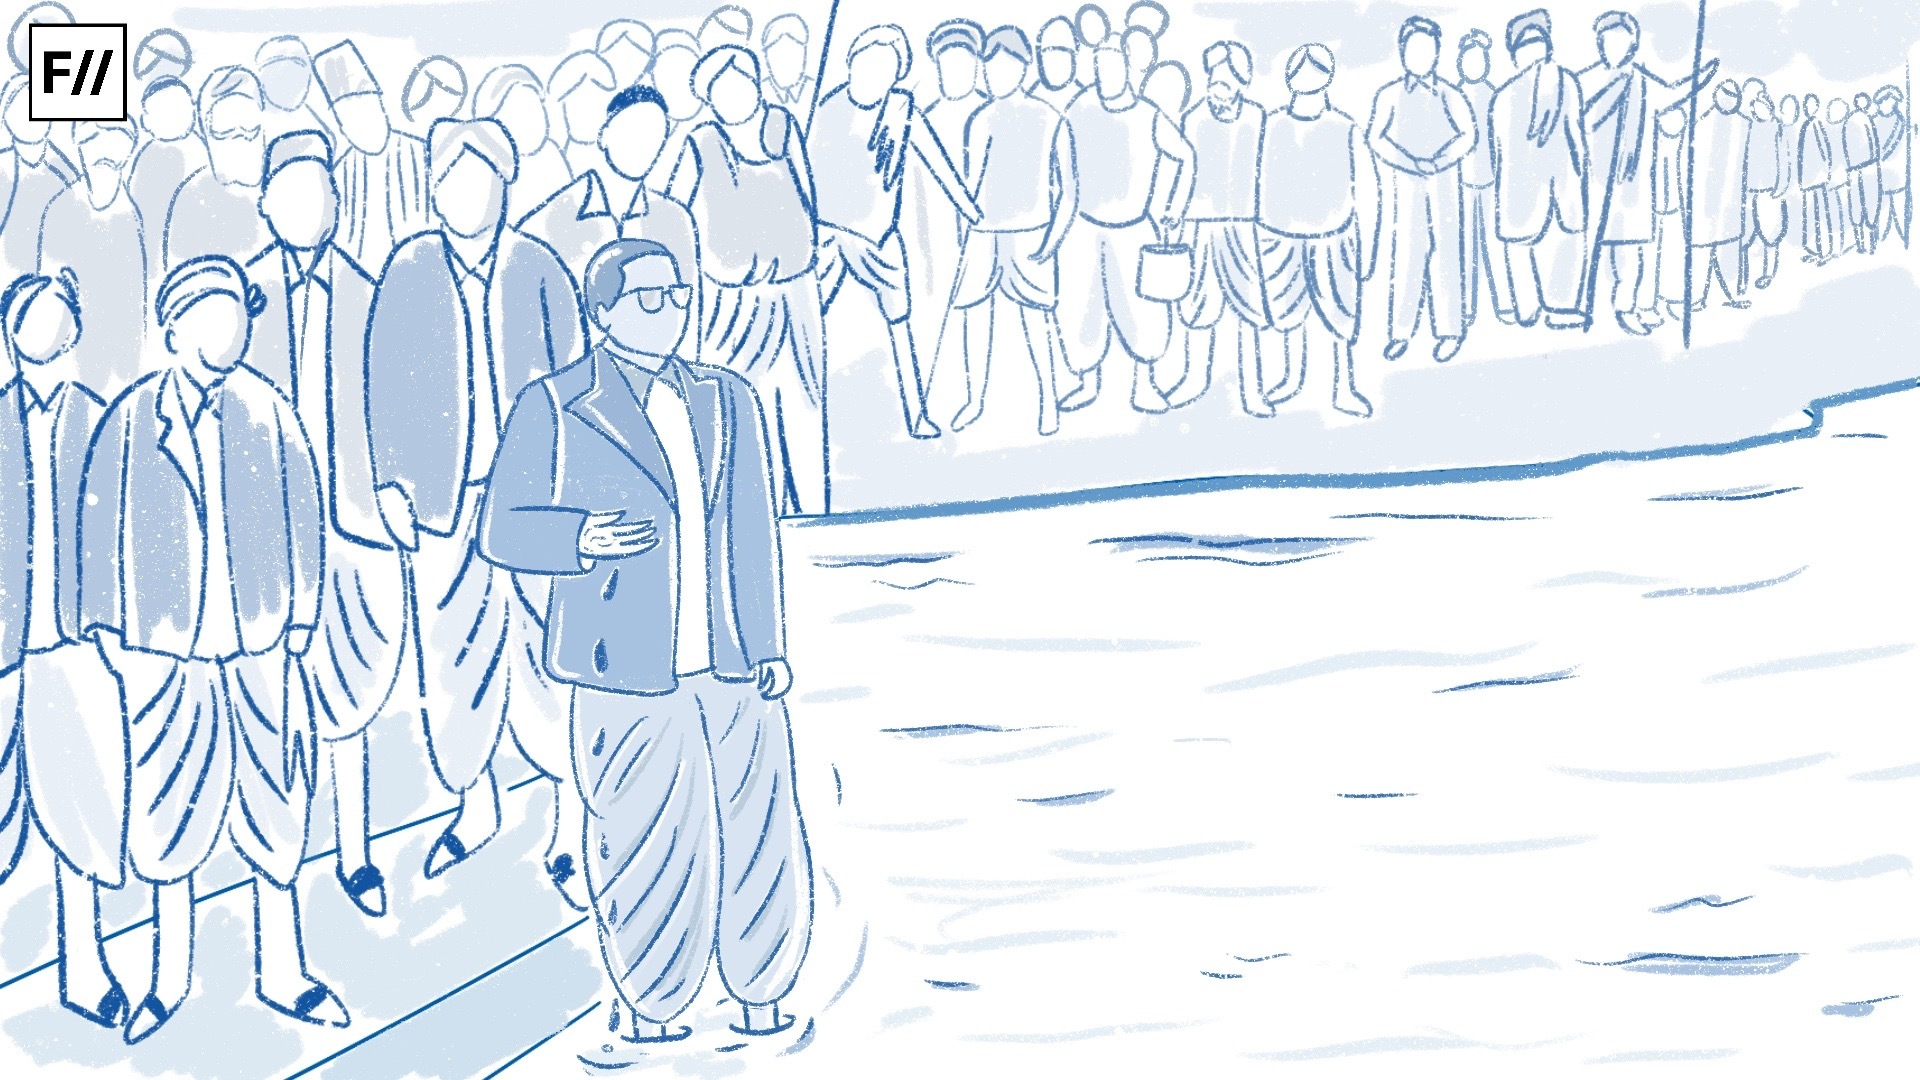 The Significance Of Mahad Satyagraha: Ambedkar's Protest March To Claim Public Water